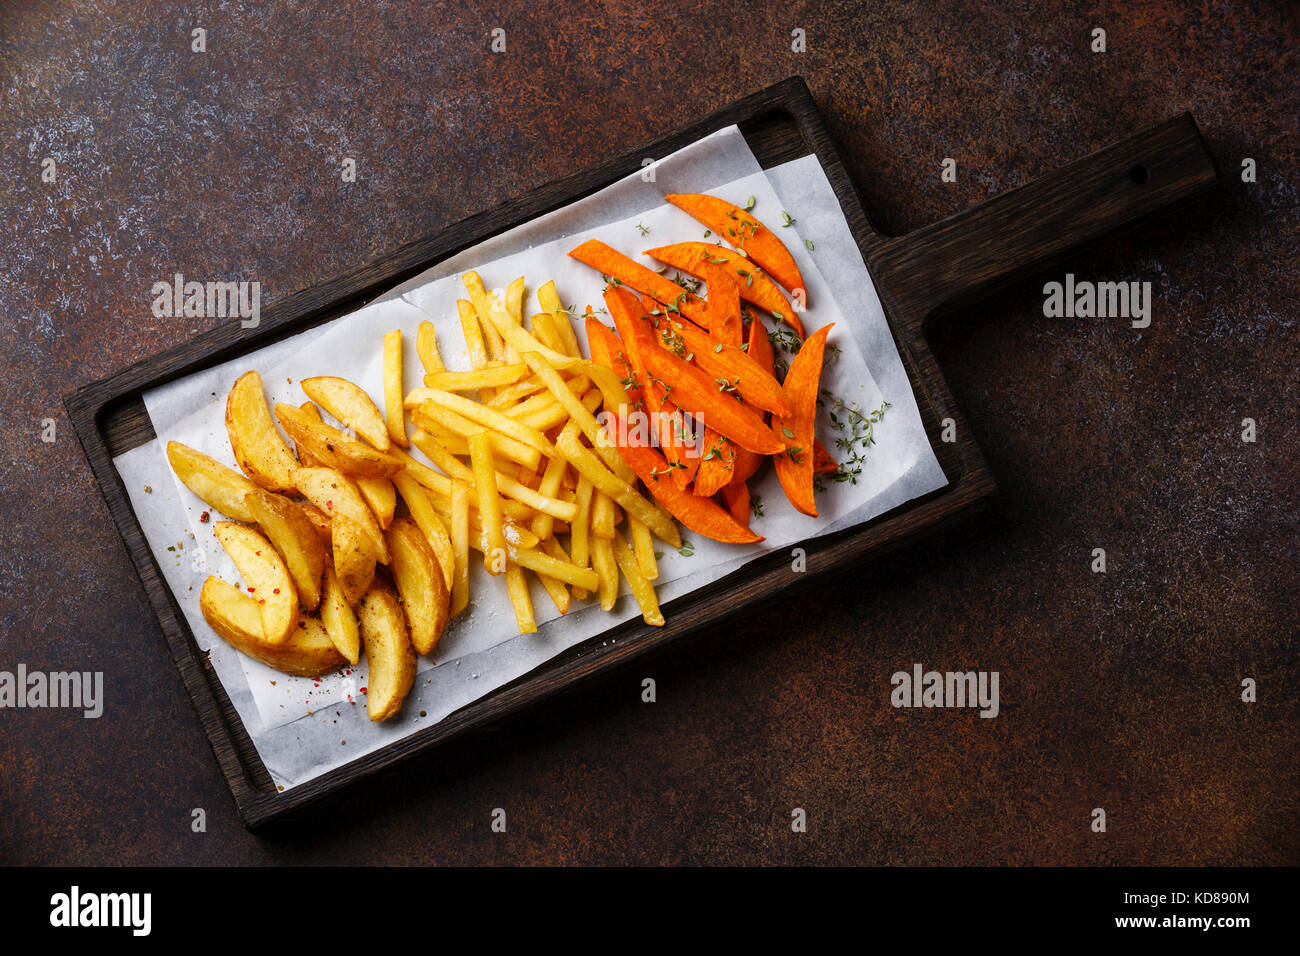 Variety of potatoes for garnish: potato wedges, french fries, sweet potato on brown background - Stock Image